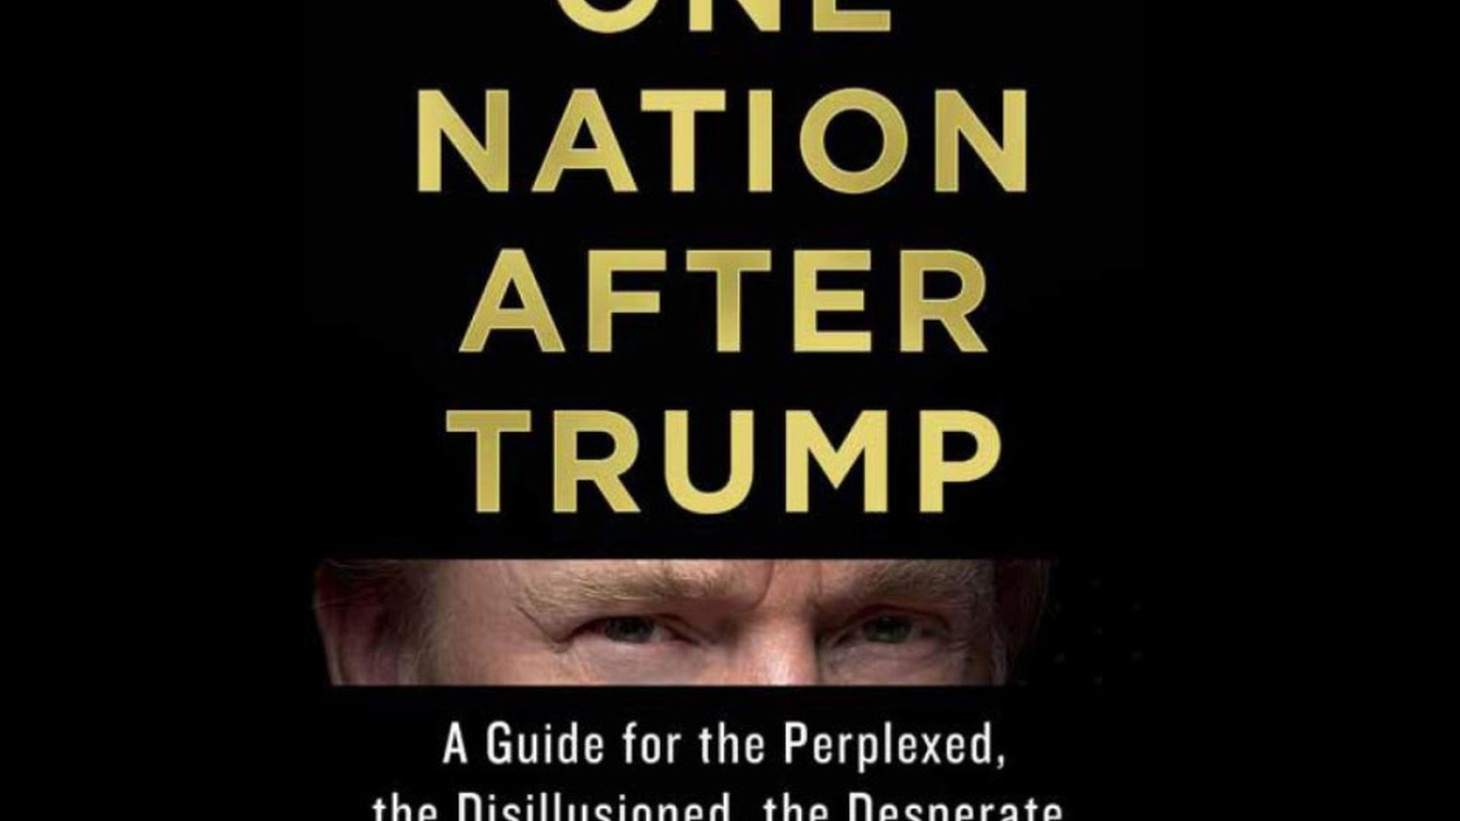 """Norman Ornstein is co-author of the new book  One Nation after Trump , and yesterday we heard him describe how """"Trumpism"""" has been decades in the making. Today we turn to the future of democracy and what Ornstein calls """"a contract for social responsibility"""" involving American corporations.   Listen to  Part I ."""